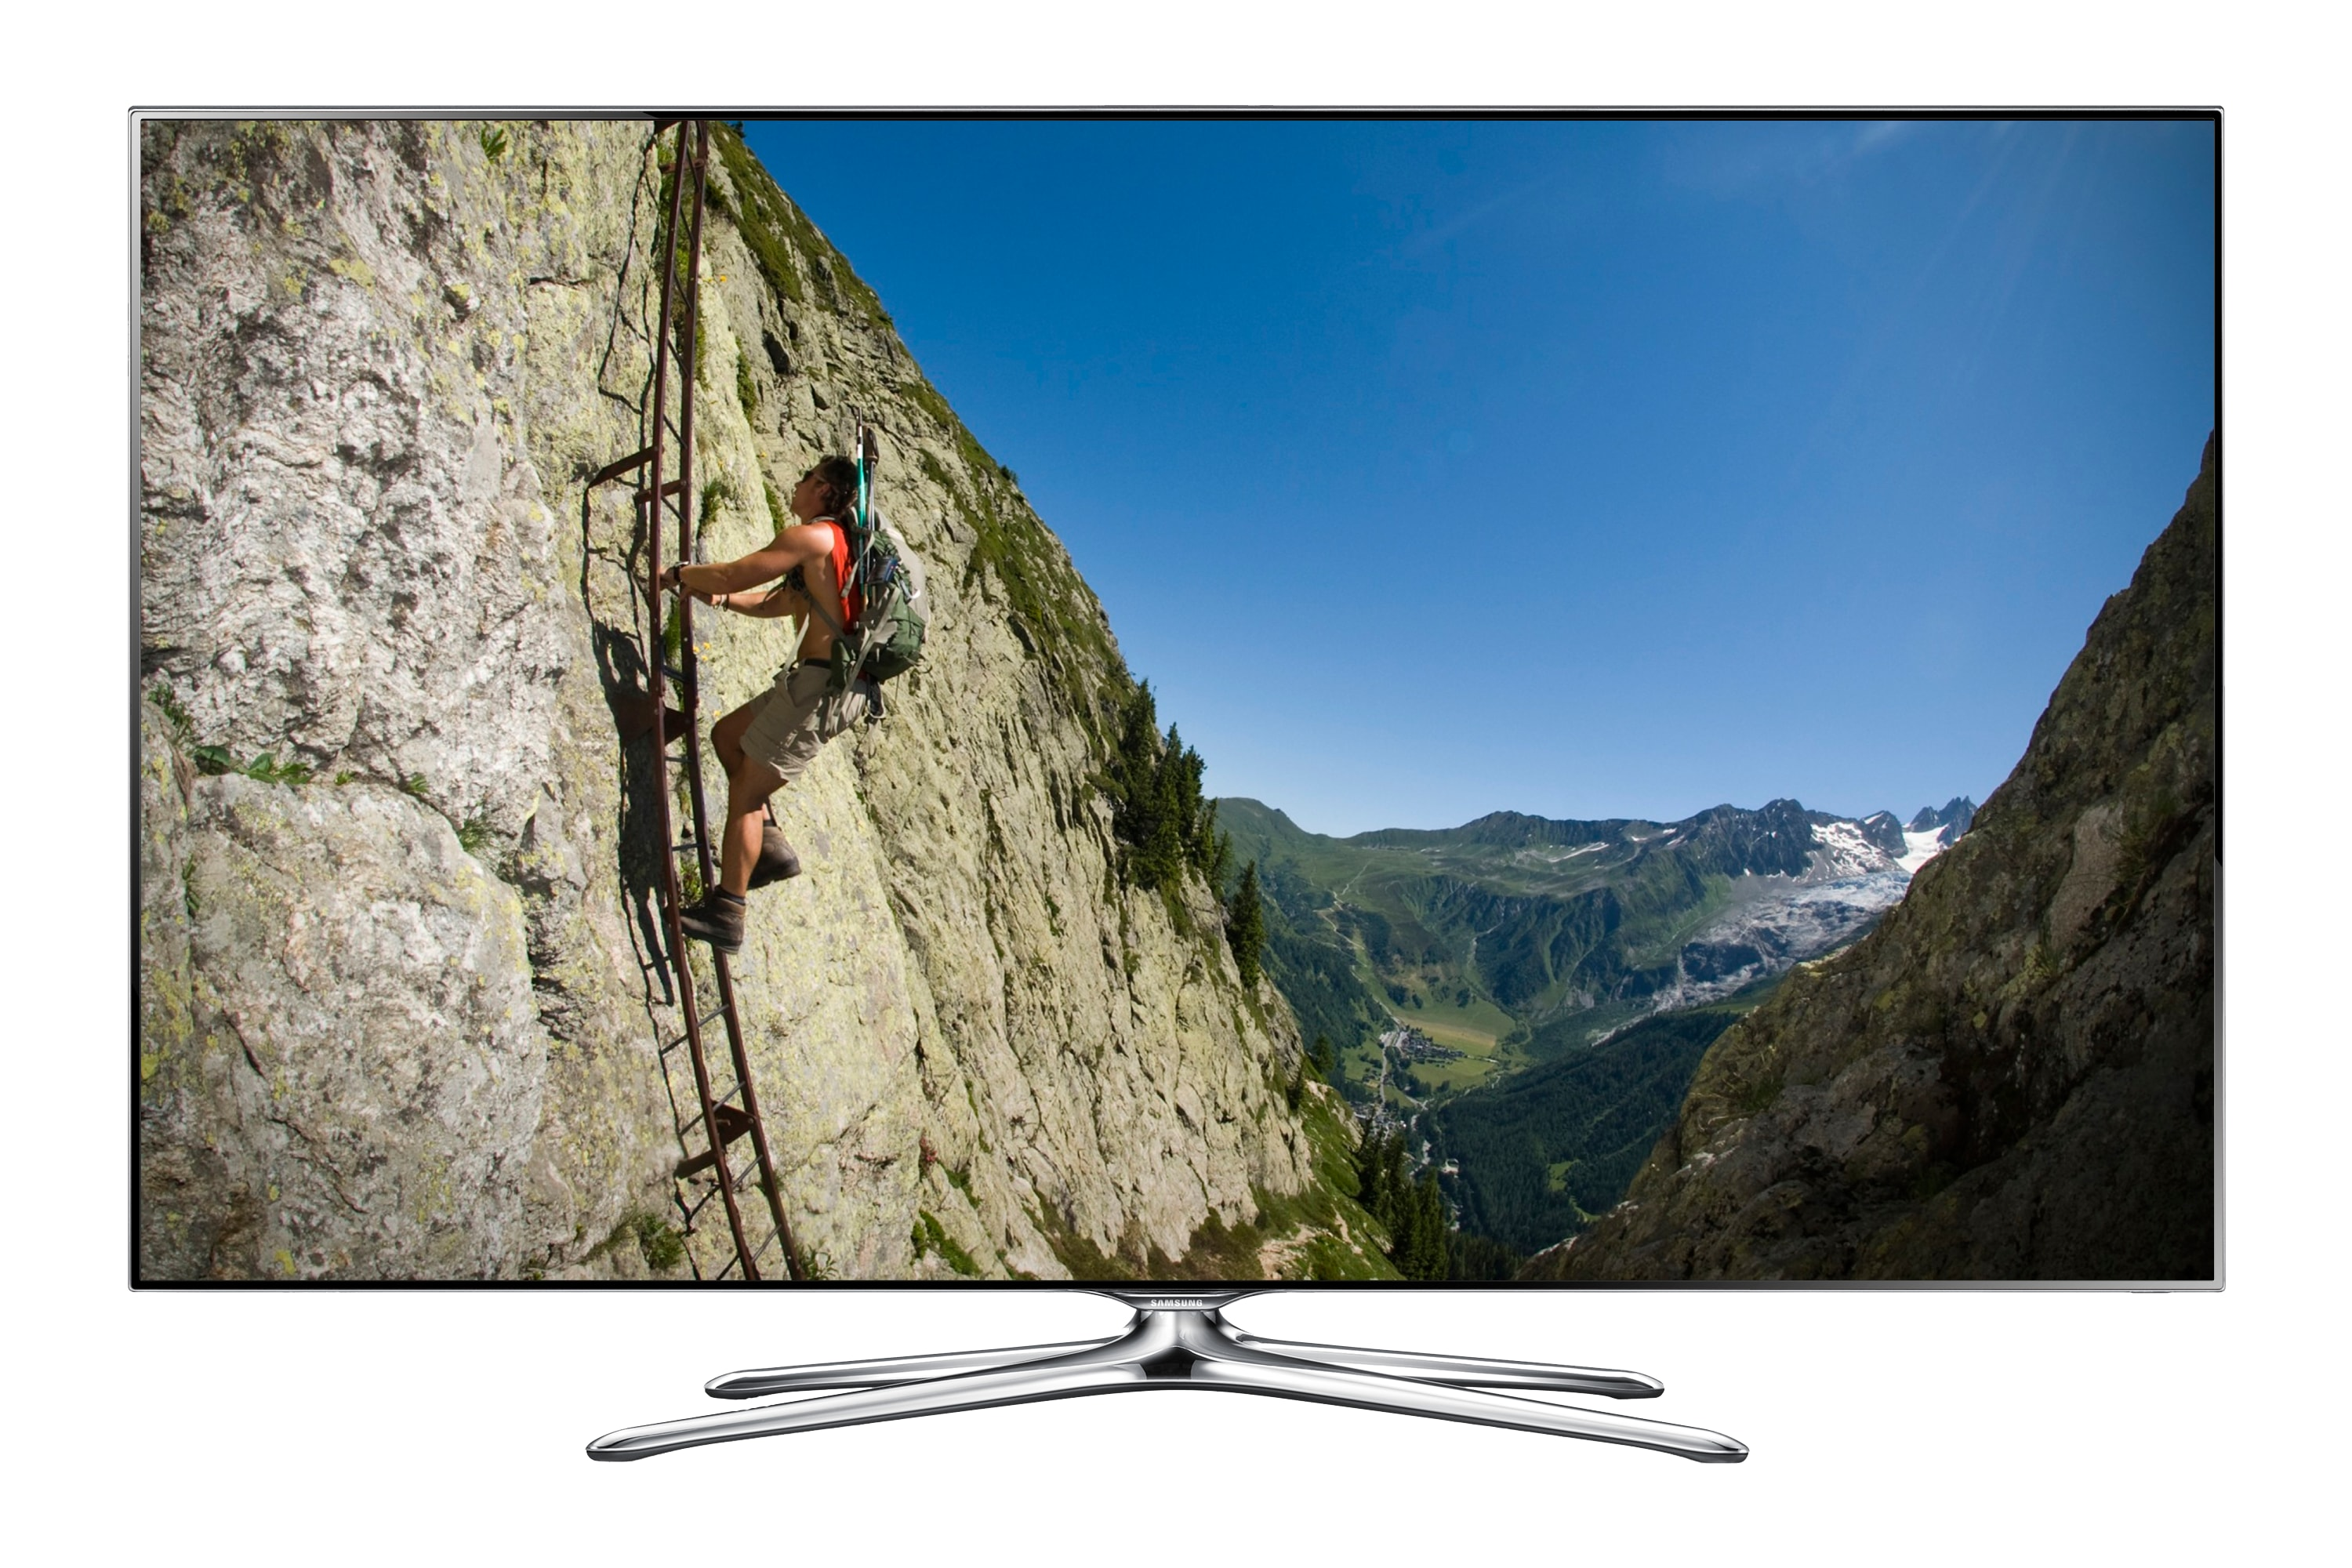 75 7100 Series LED TV (2013)